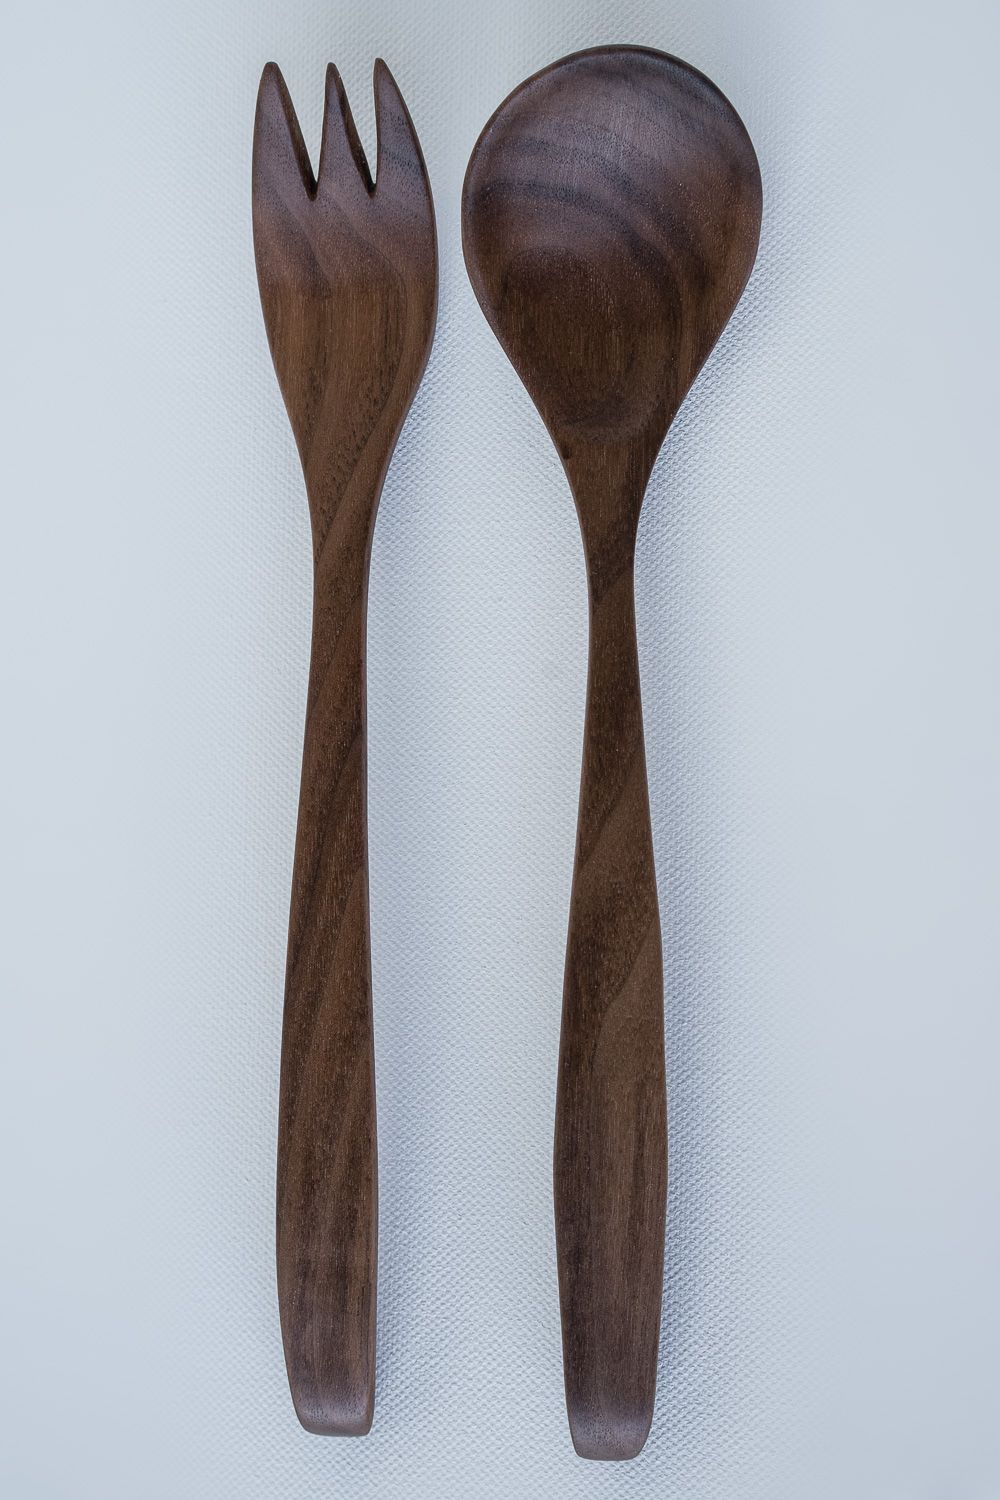 Walnut Wood Salad Server Set - WOODEN SPOONS, BABY SPOONS, SERVING ...